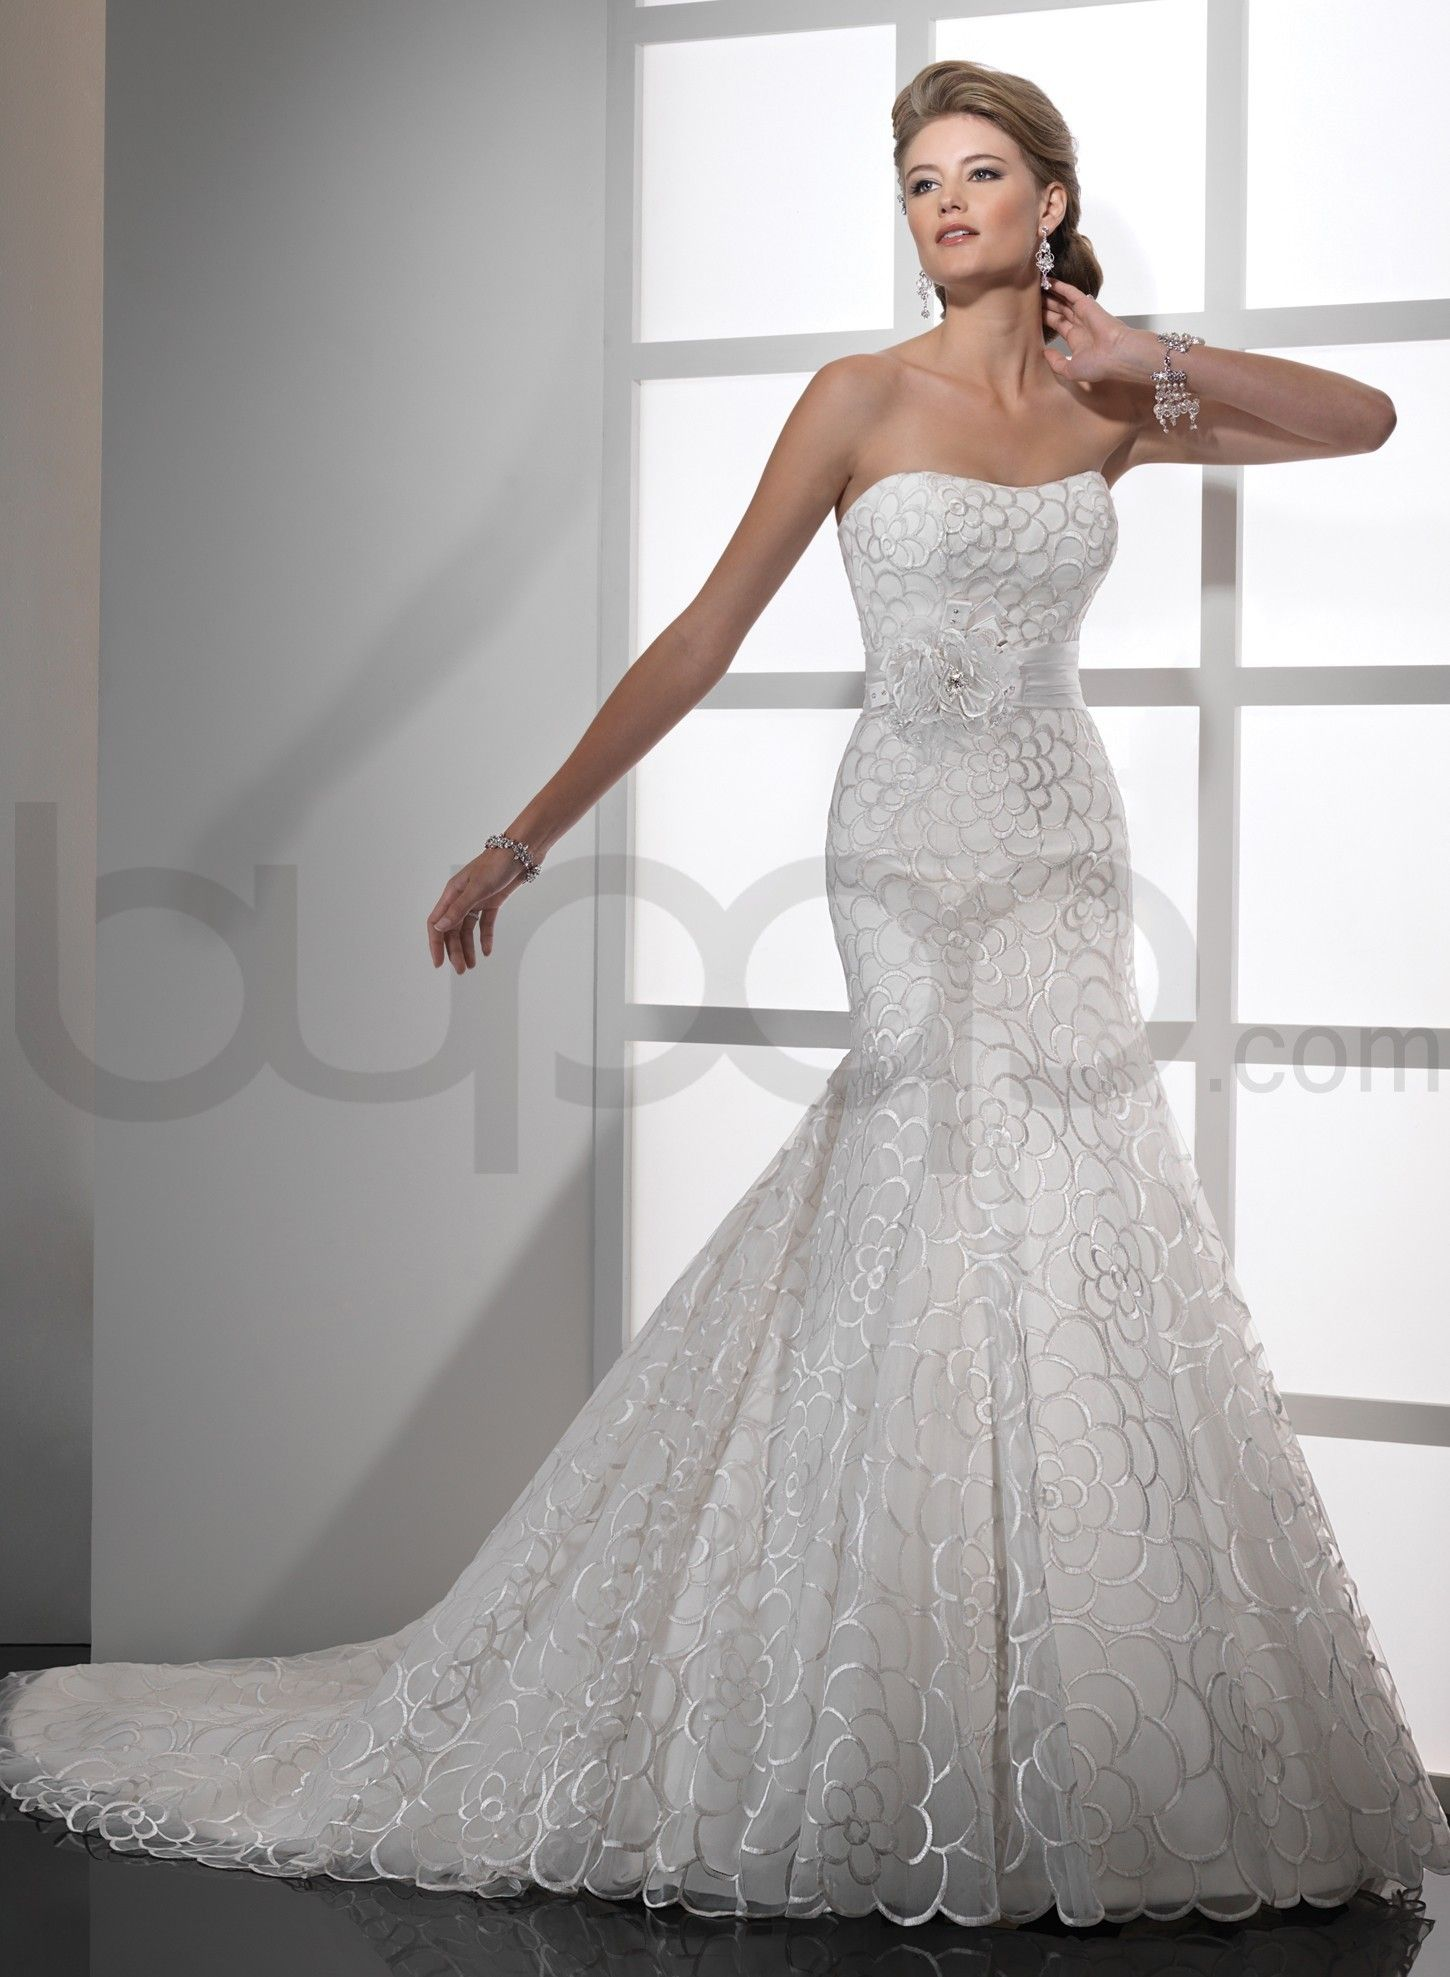 Dipped wedding dress  Intricate Embroidery Tulle Aline Strapless Dipped Neckline Fit and